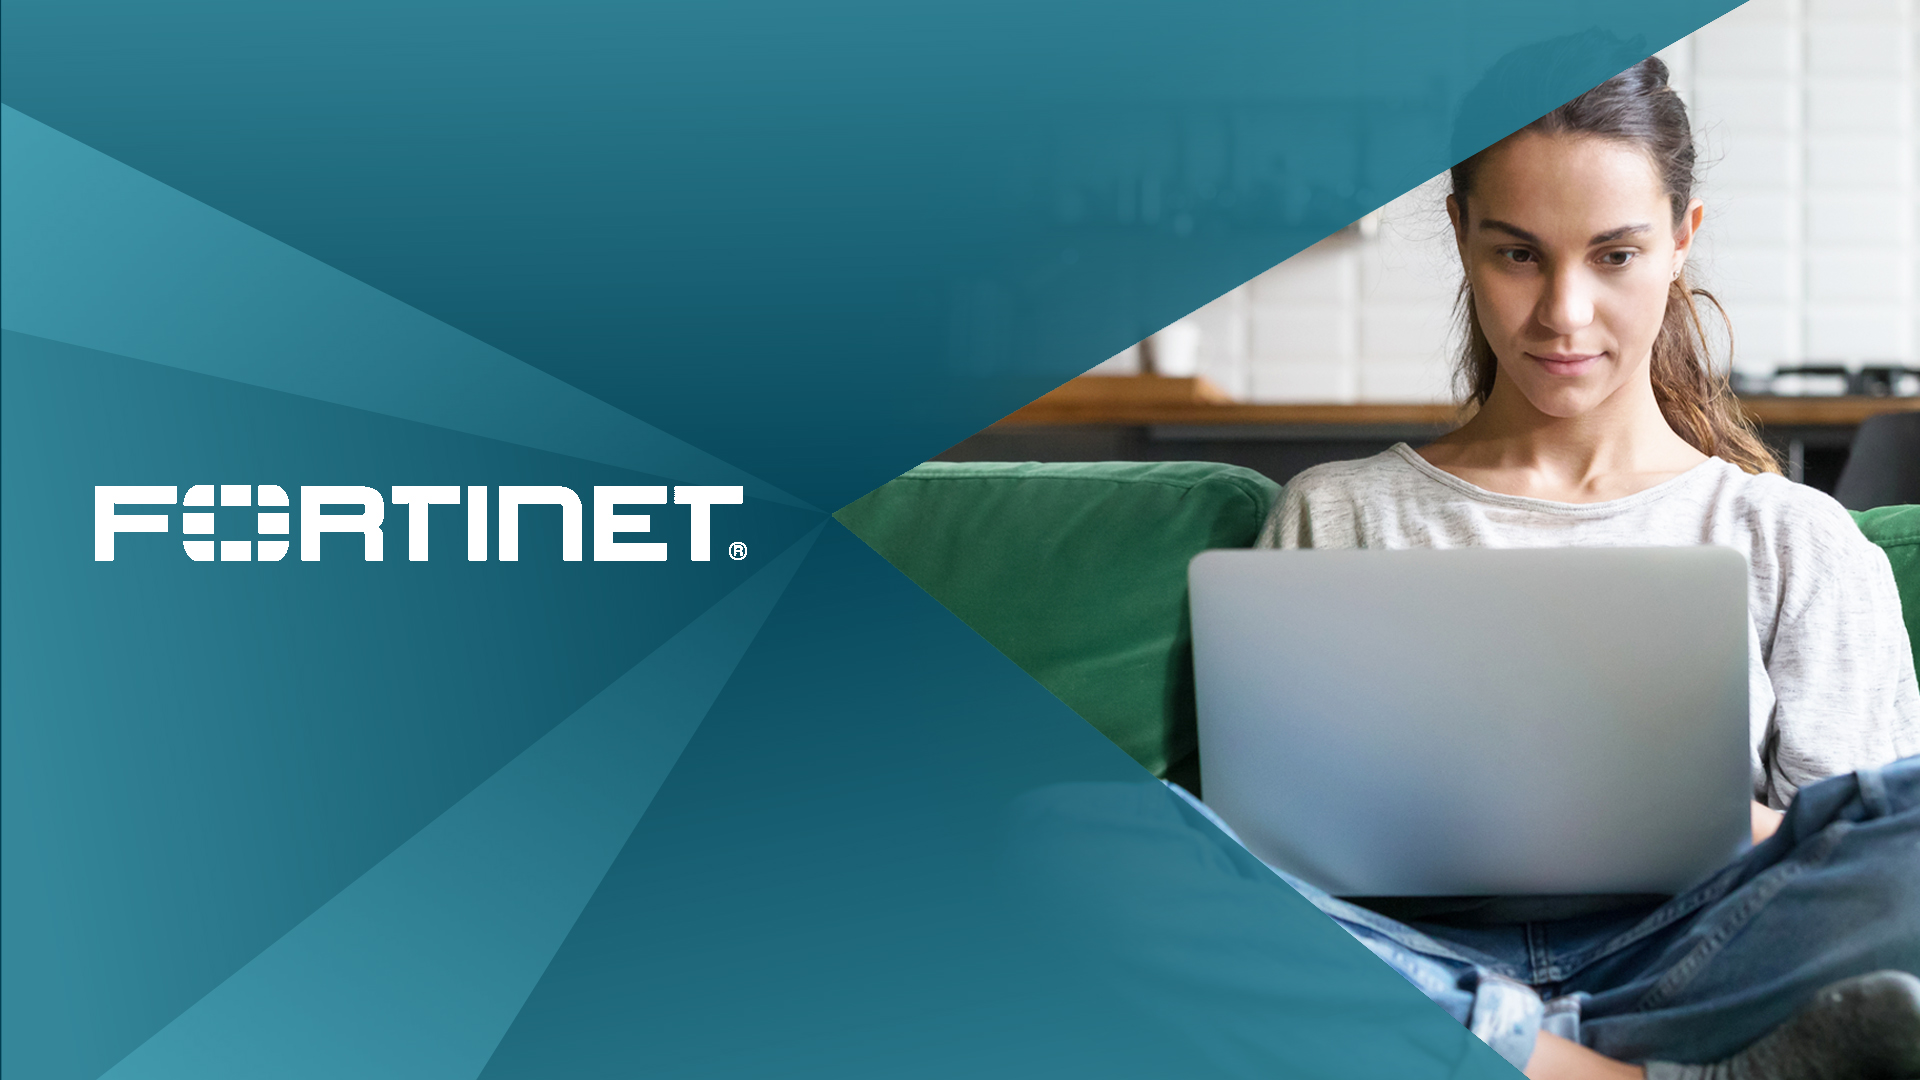 Fortinet Remote Access Solutions